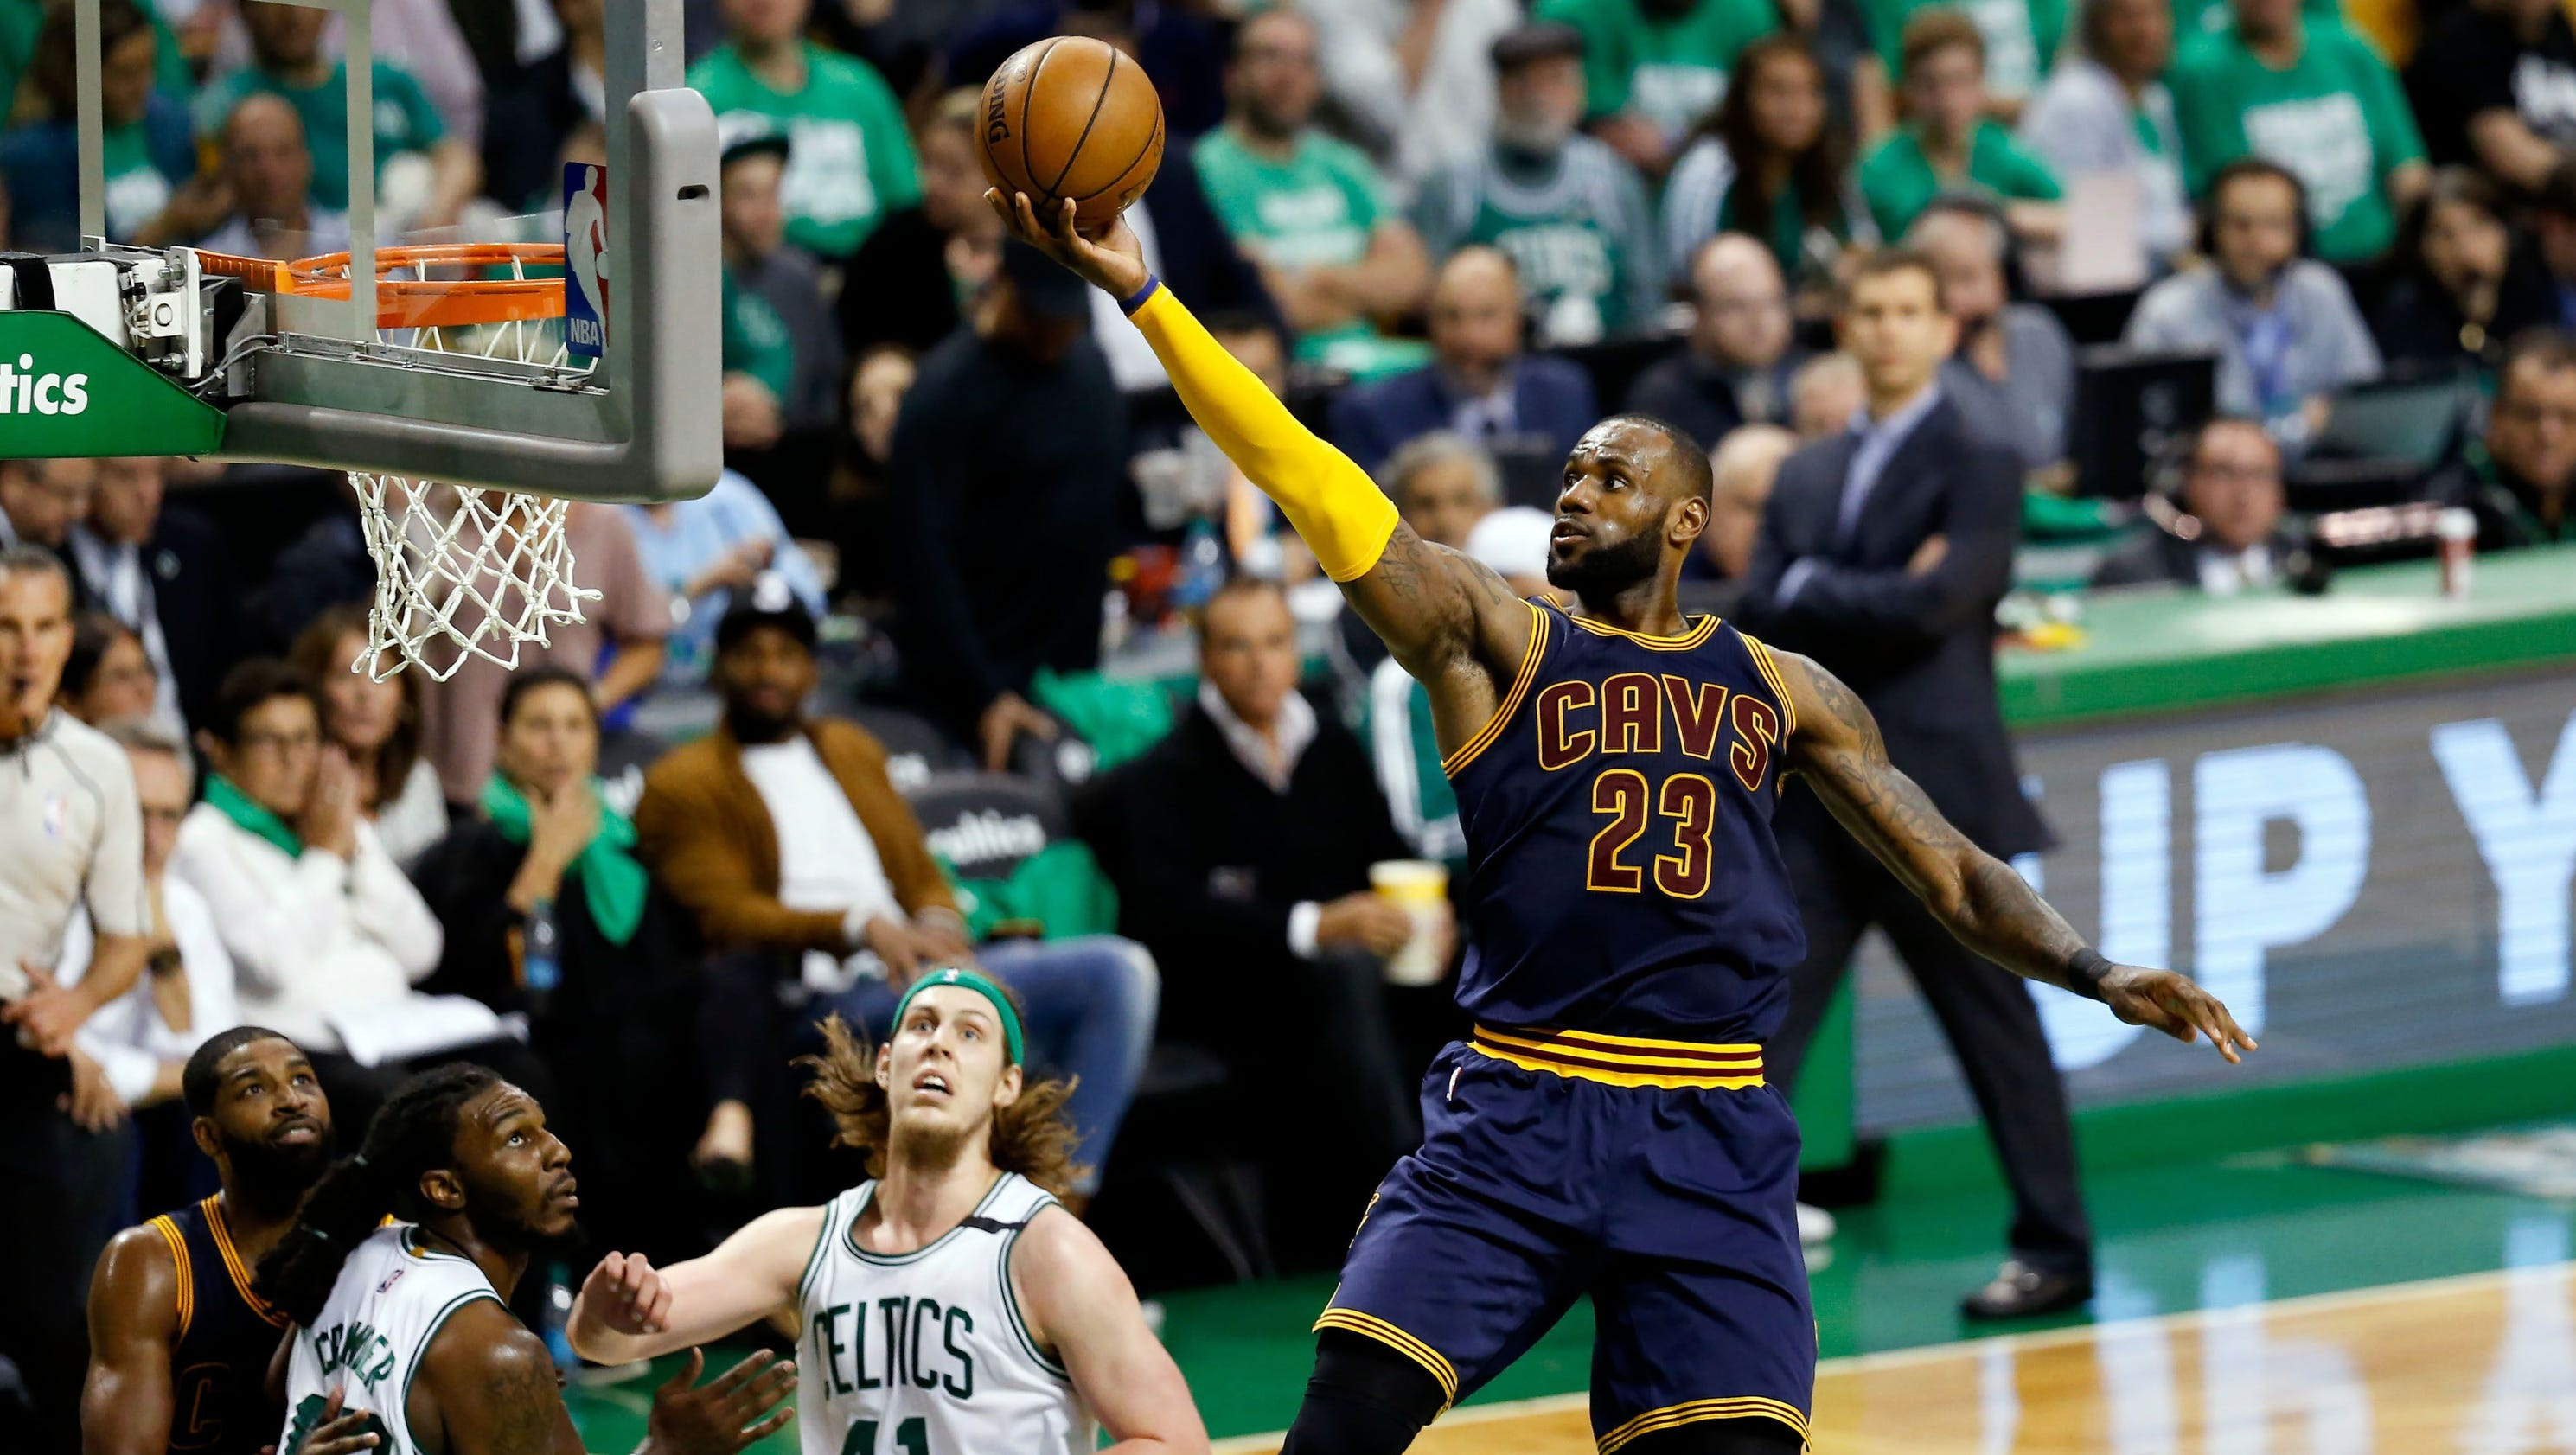 636313485706984523-usp-nba-playoffs-cleveland-cavaliers-at-boston-ce-91209554